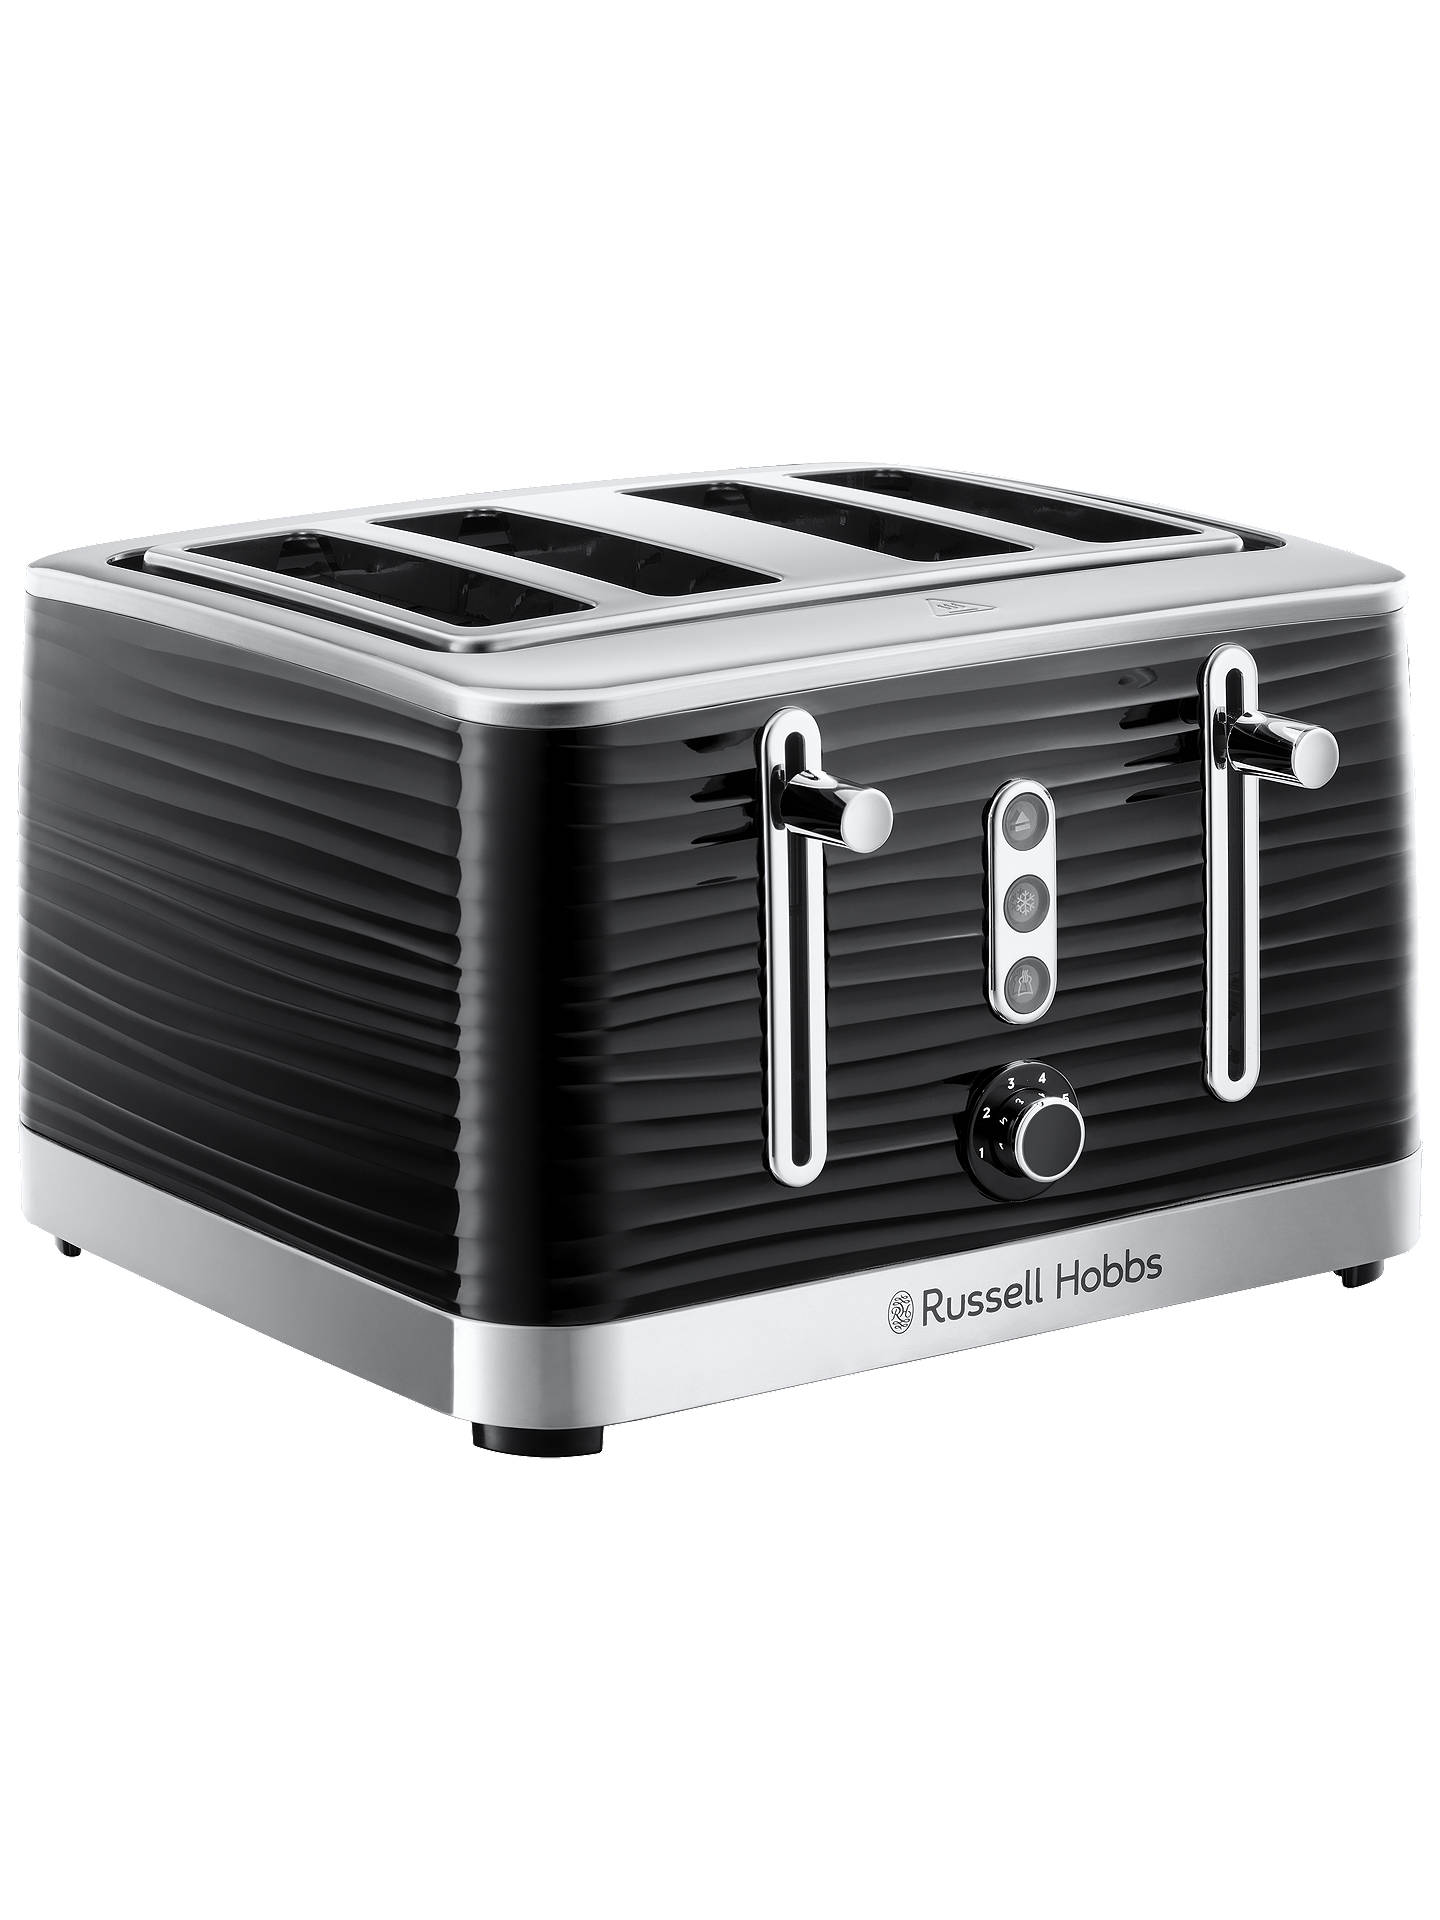 BuyRussell Hobbs Inspire Toaster, Black Online at johnlewis.com